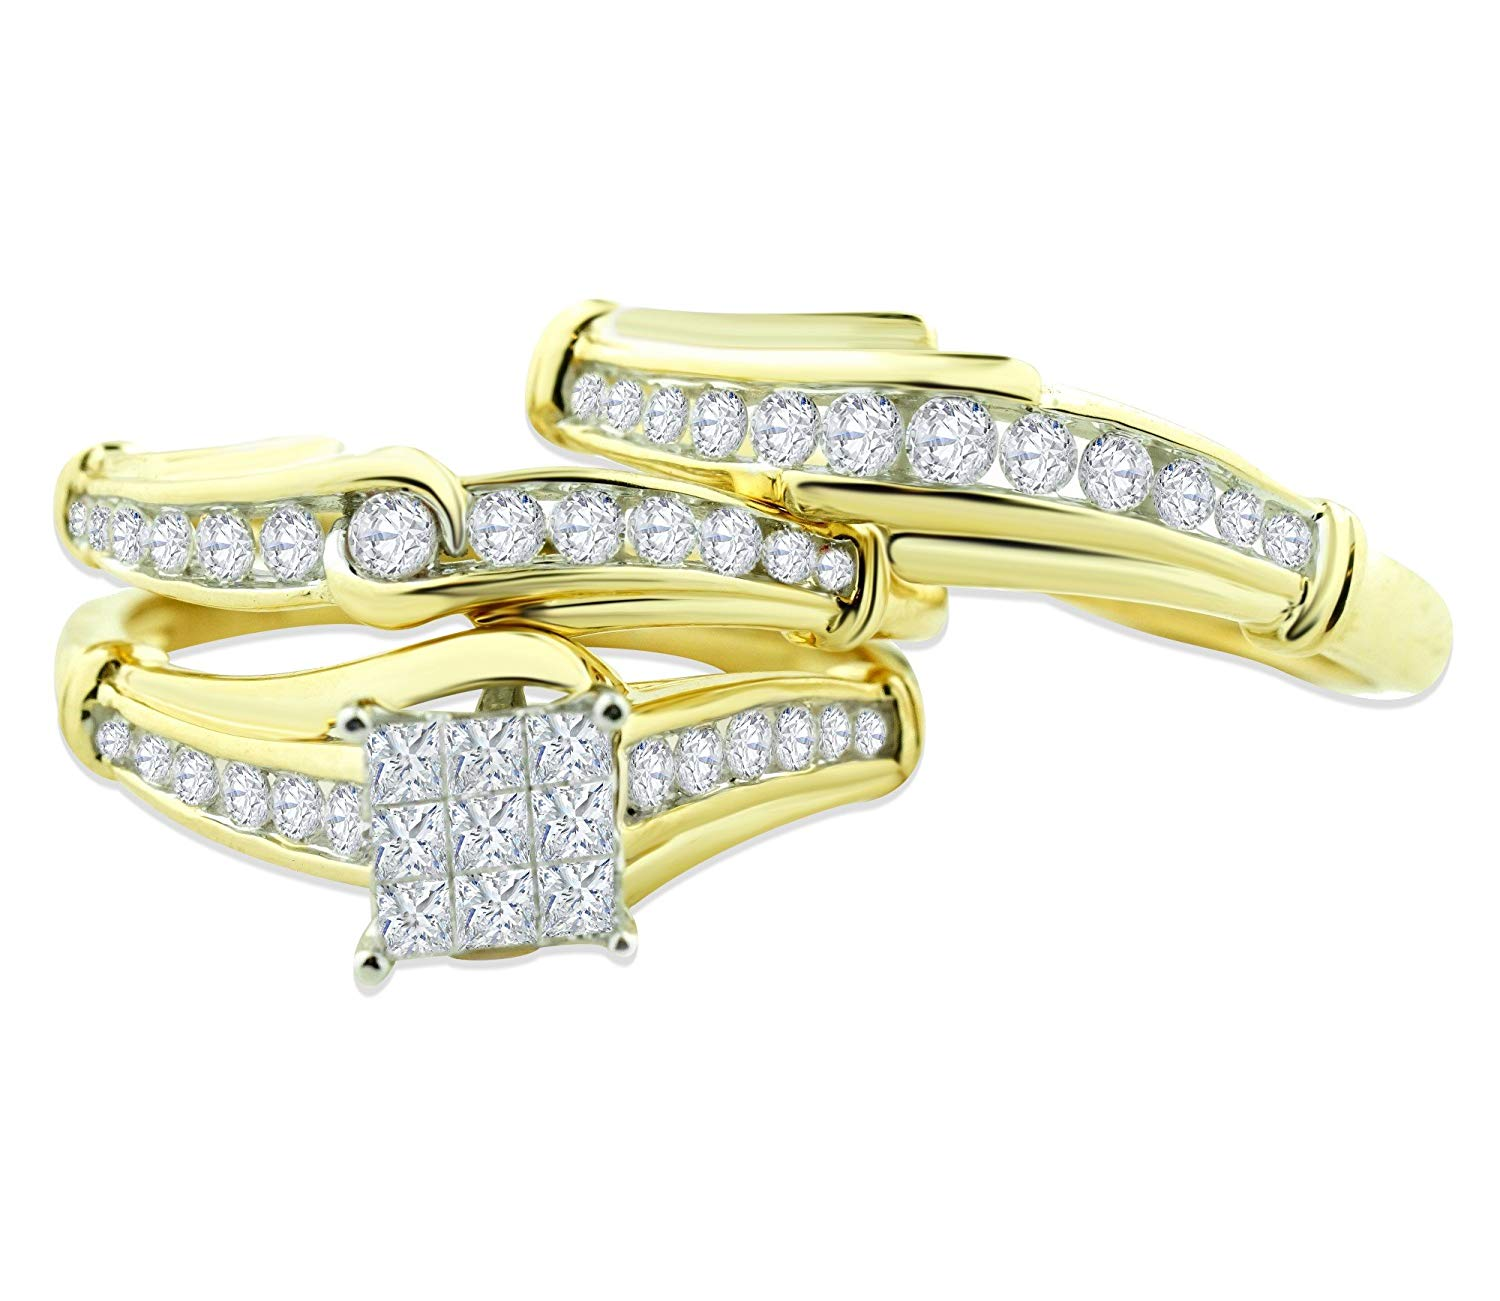 aa5320f681 Get Quotations · Midwest Jewellery 14K Gold Trio Rings Set His and Her Rings  Set 1.00ctw Diamonds Princess